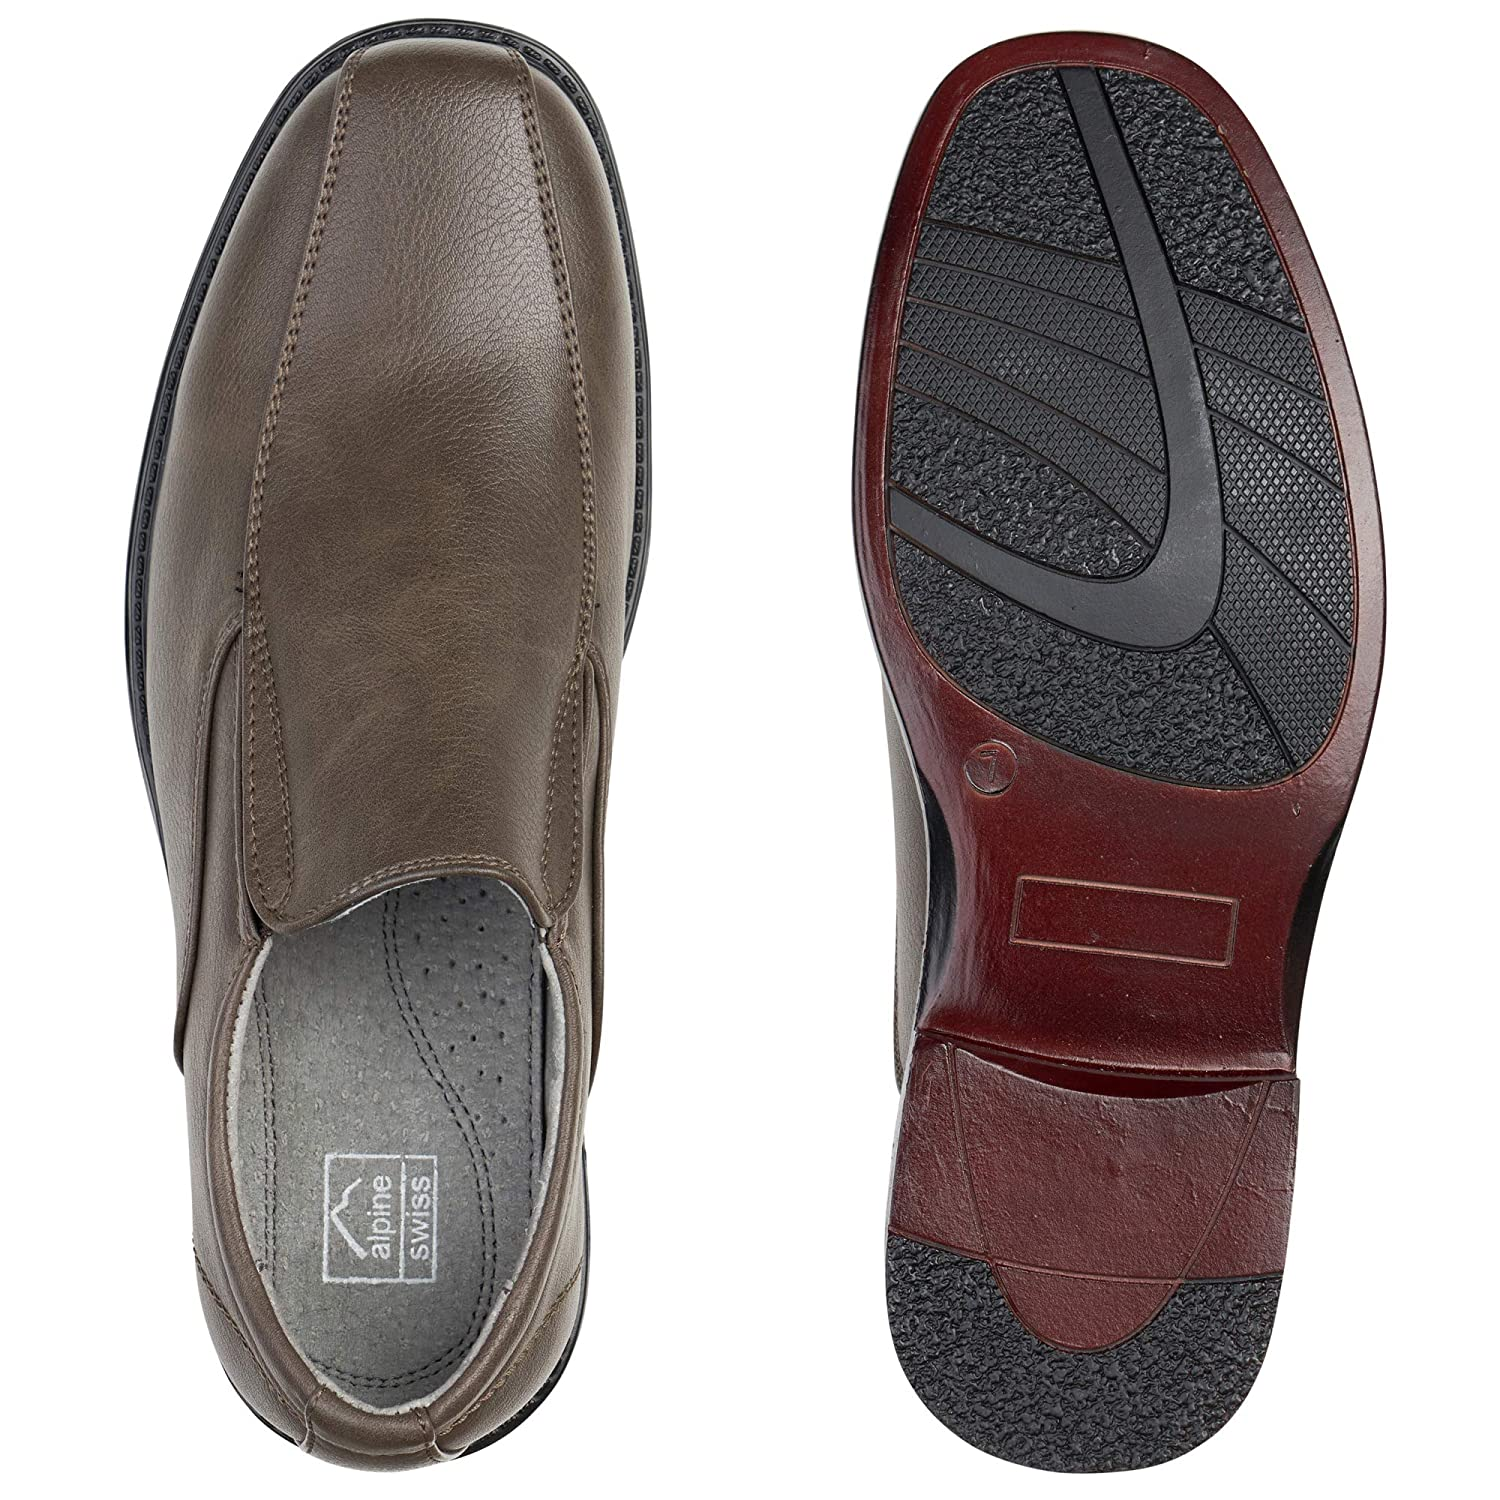 143d06ff78d4 Alpine Swiss Mens Dress Shoes Leather Lined Slip on Loafers  Amazon.ca   Shoes   Handbags